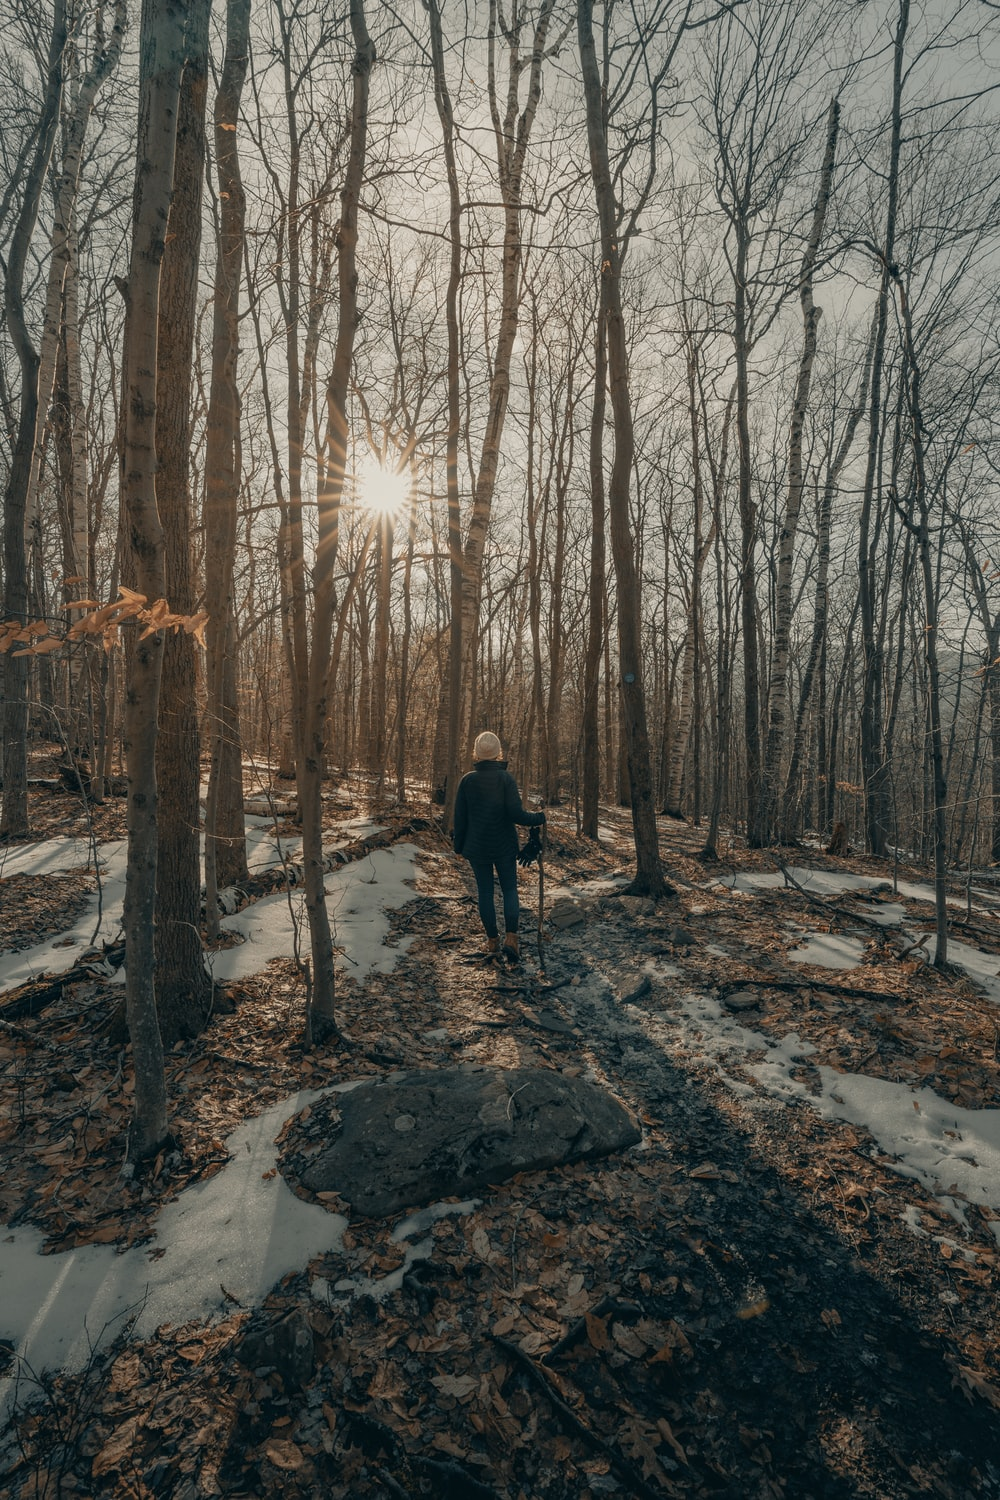 person in black jacket standing on snow covered ground in between bare trees during daytime